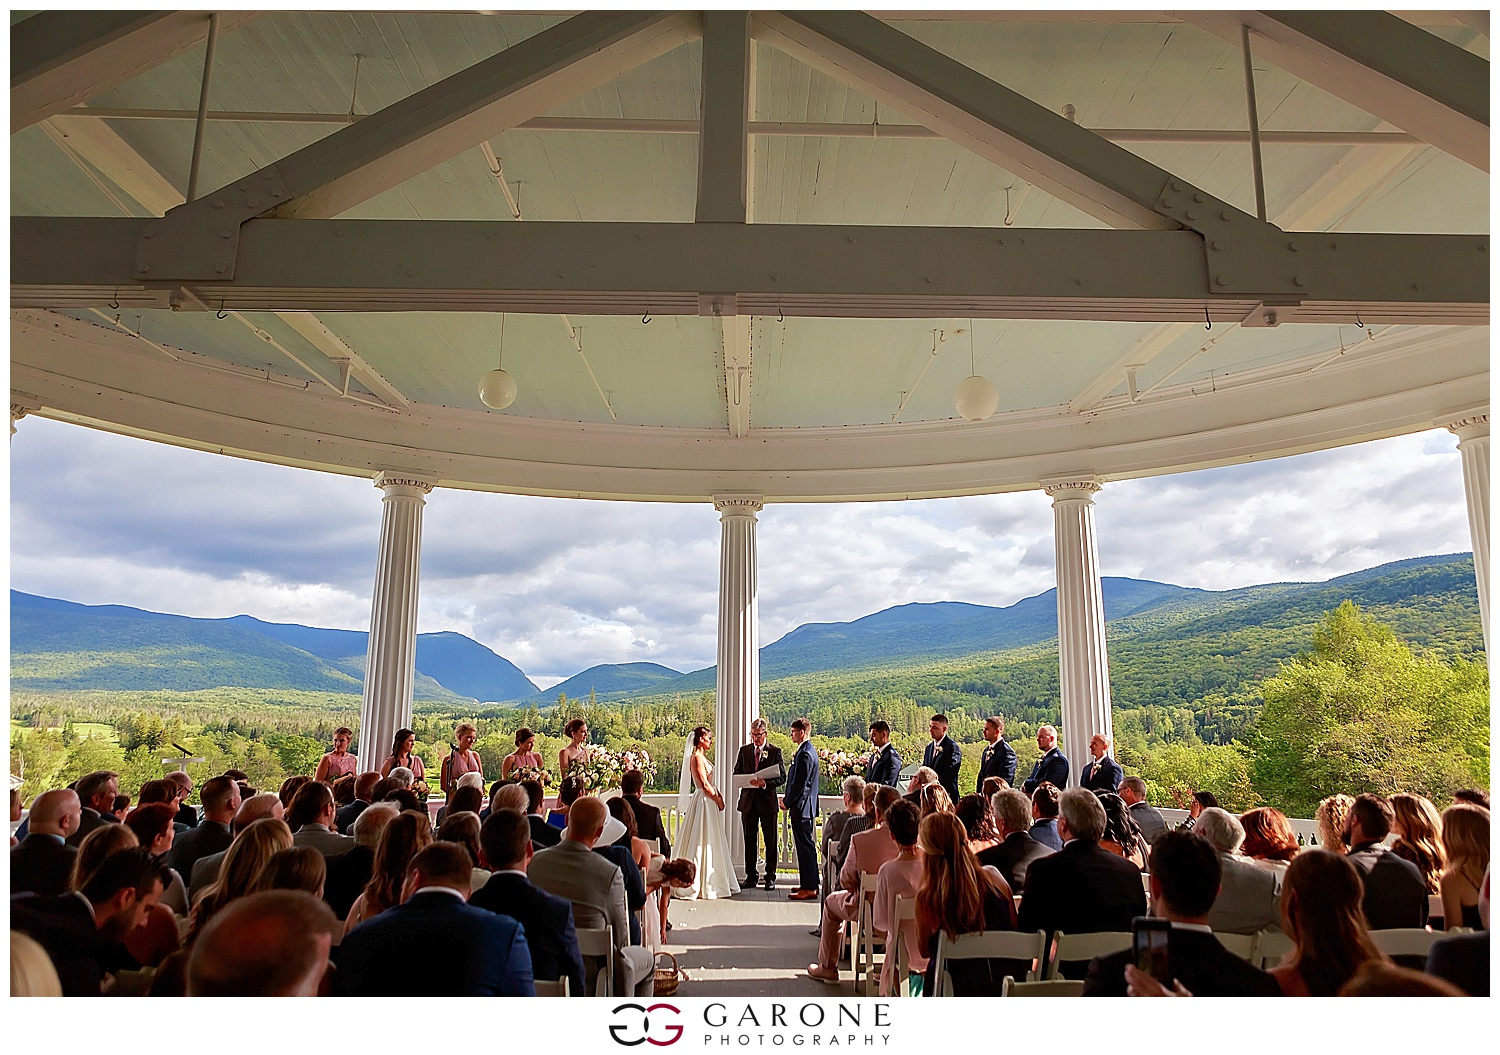 Omni_Mount_Washington_hotel_Wedding_White_Mountain_Wedding_Garone_Photography_0018.jpg